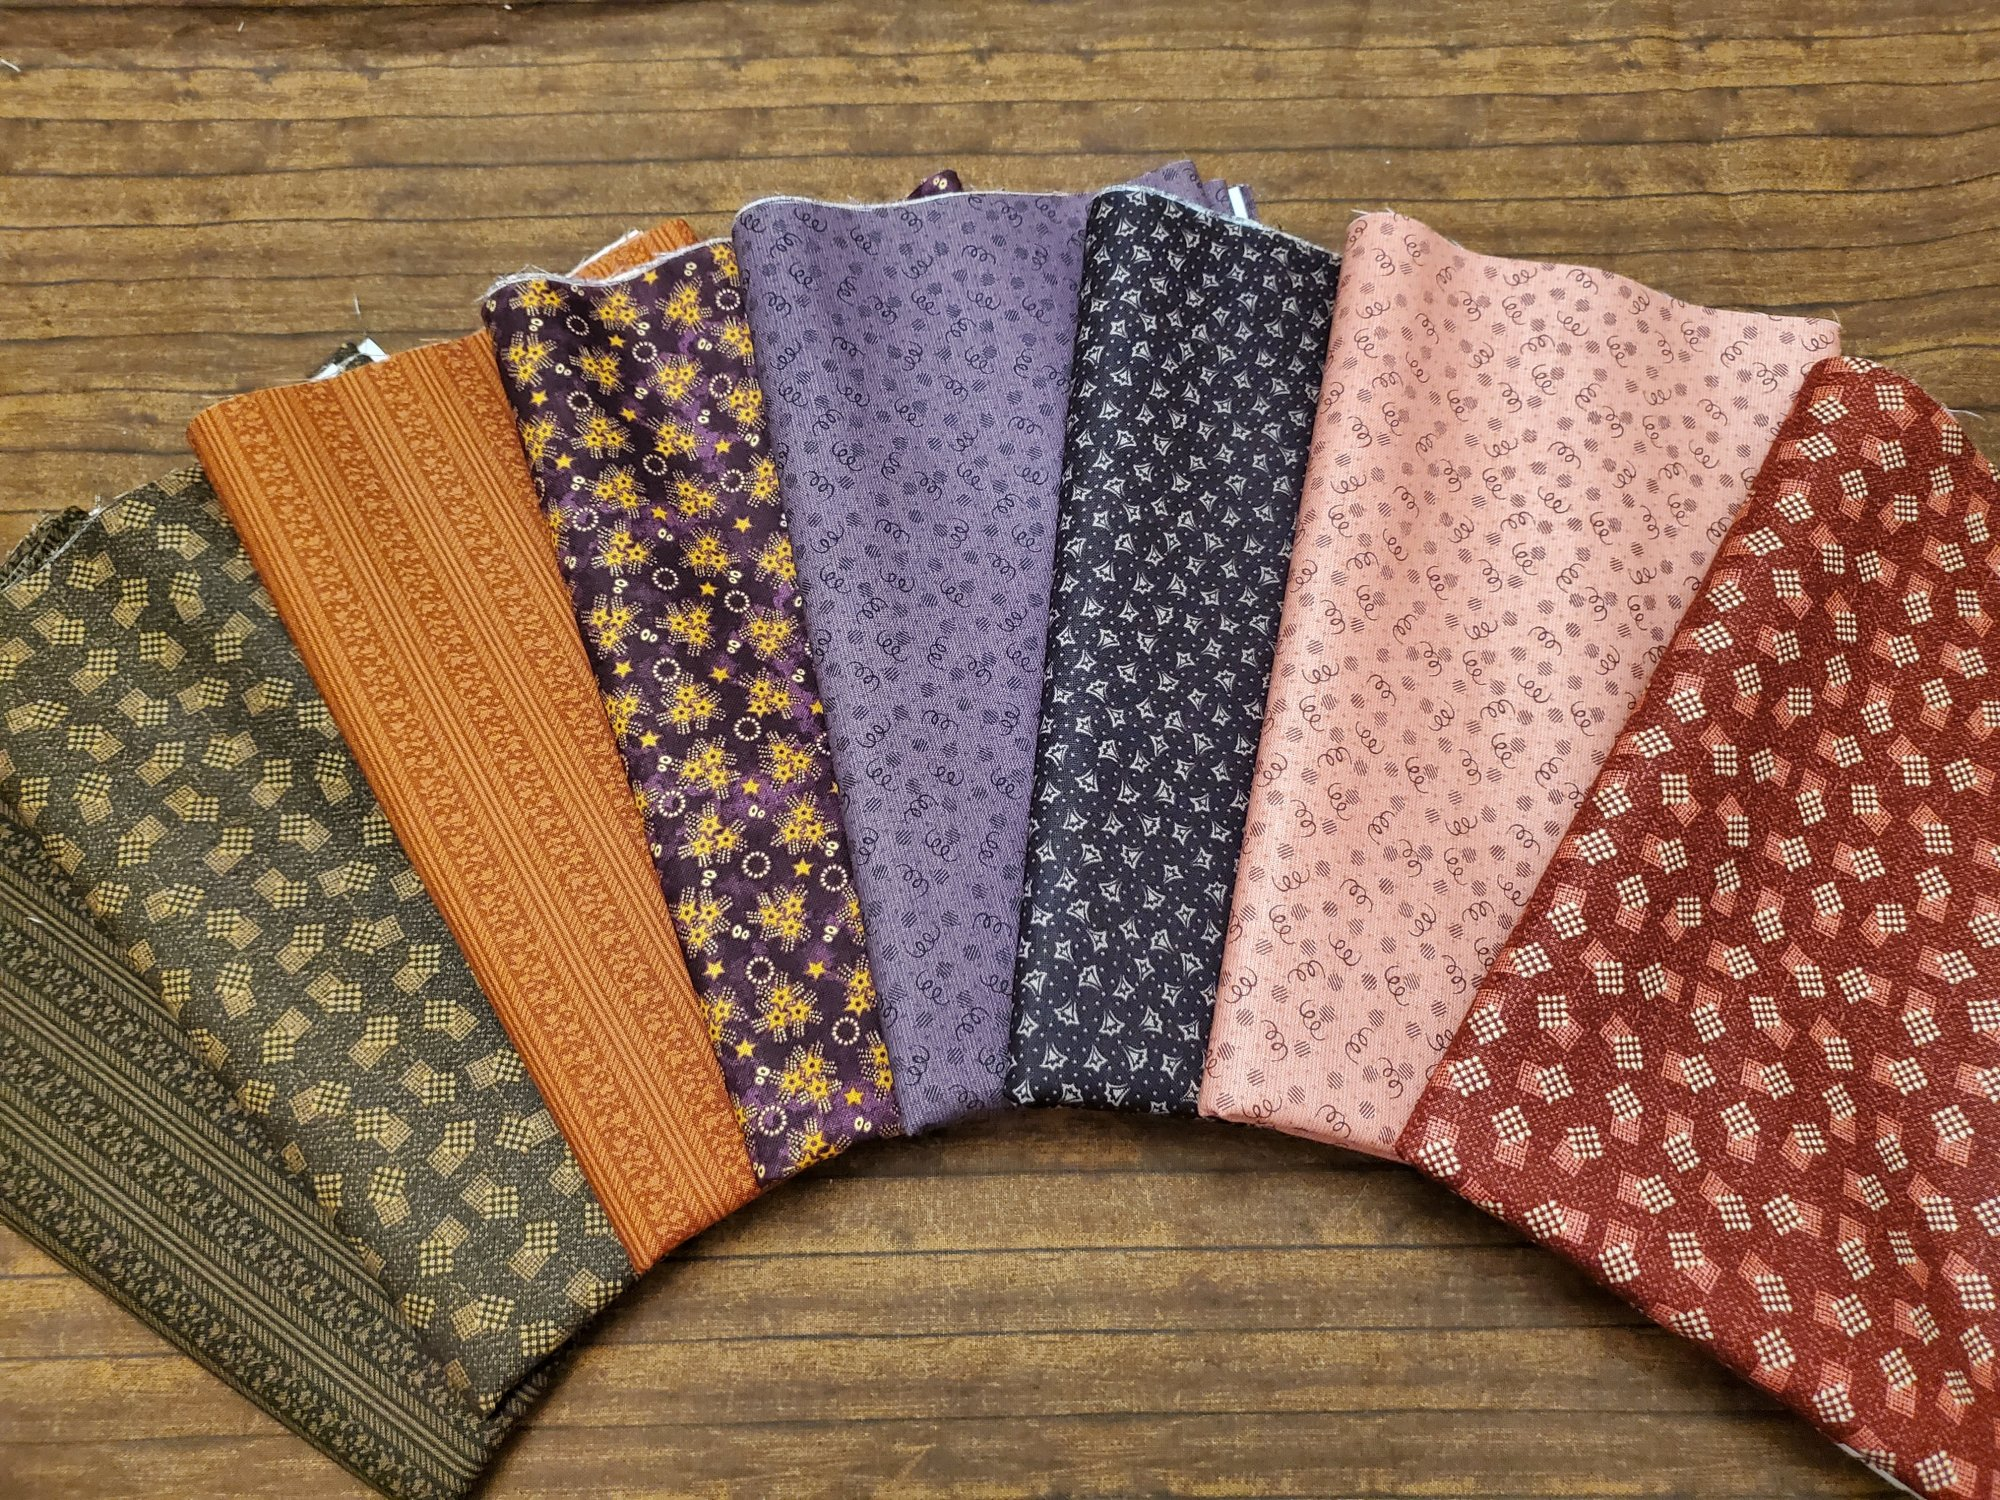 Abby's Treasures by Missie Carpenter for Blank Quilting - 8 Piece Half Yard Bundle Pack